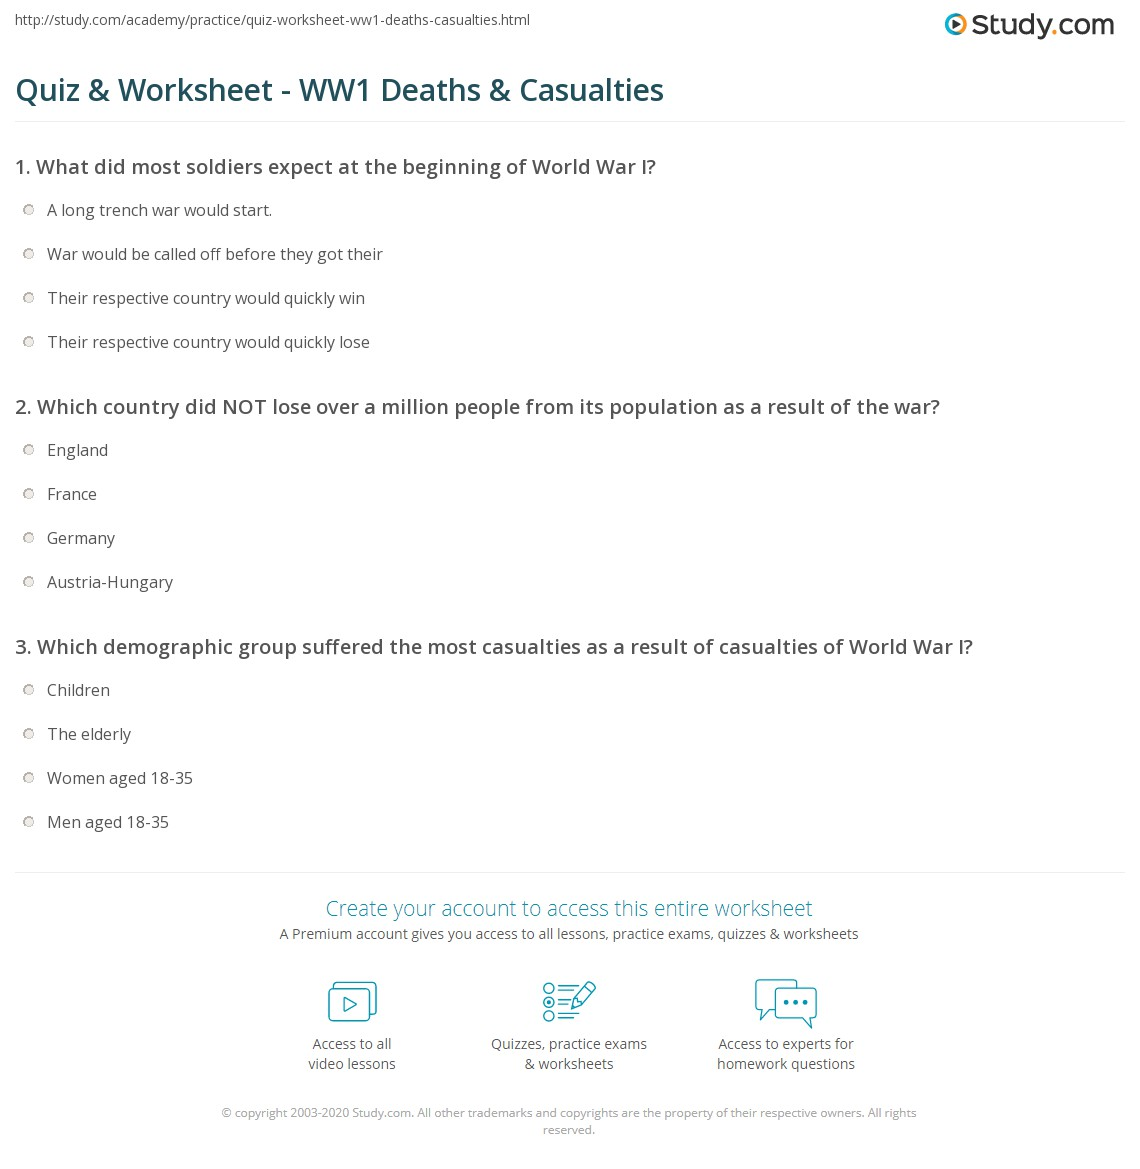 Quiz & Worksheet - WW1 Deaths & Casualties | Study.com